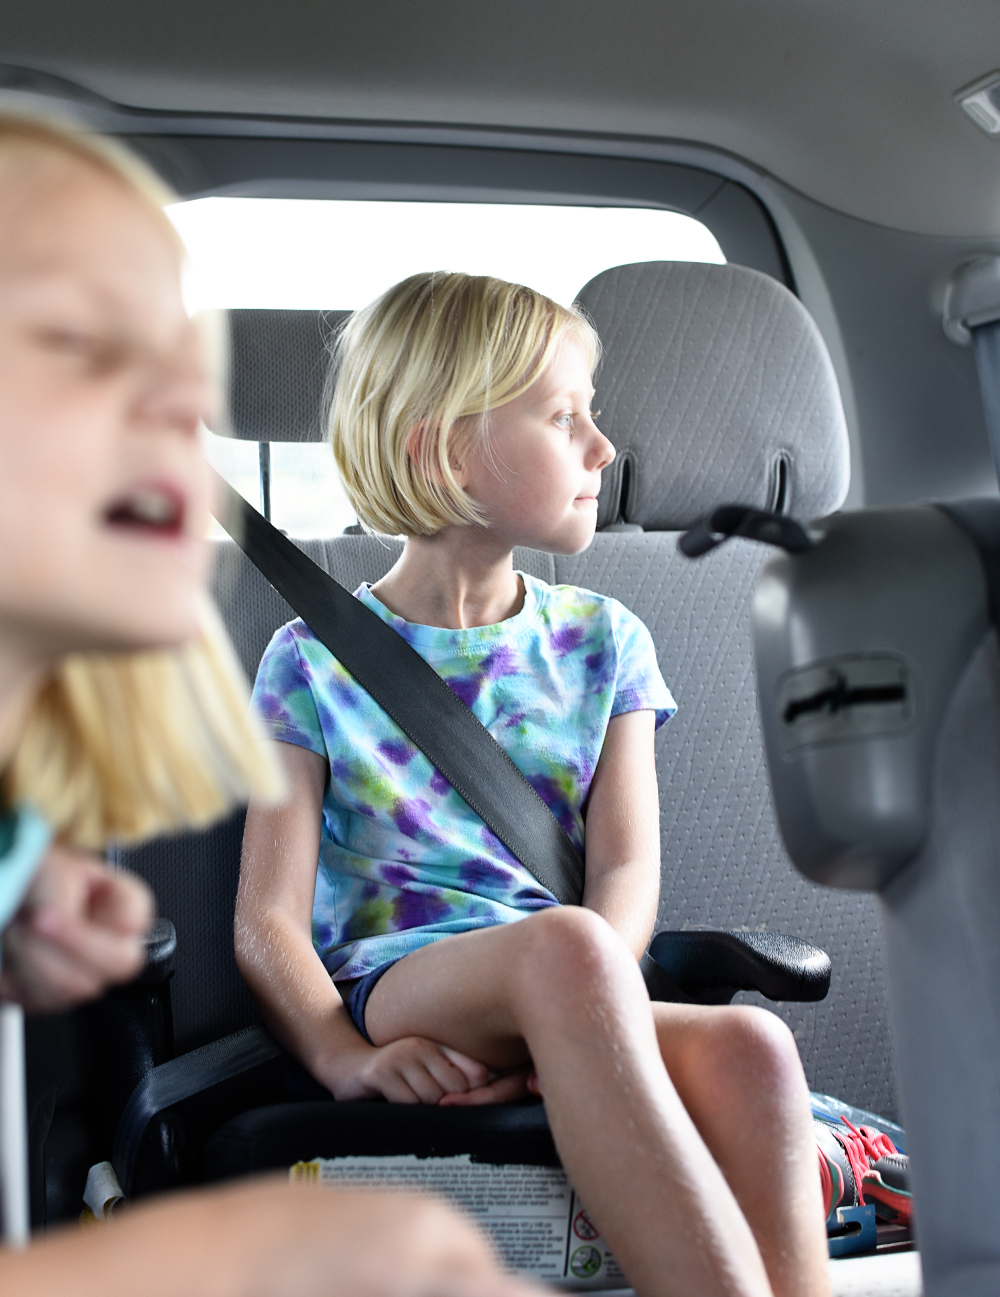 Sing all your favorite songs on a screen-free road trip with kids